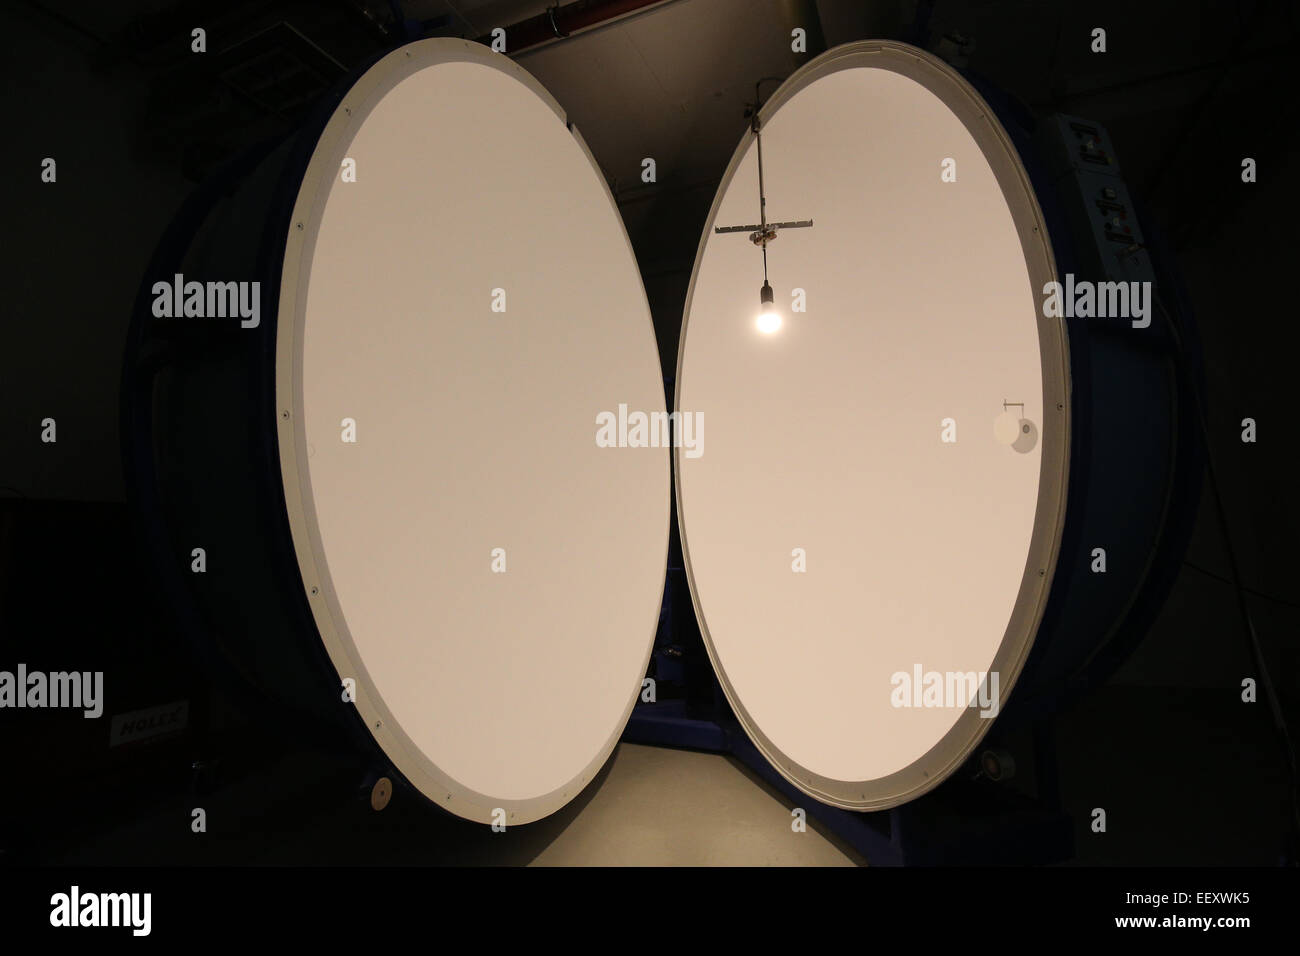 A commercial led lighting fixture is lit in a so called ulbricht a commercial led lighting fixture is lit in a so called ulbricht sphere that mesures radiant power and luminous flux at the hamburg traffic facilities mozeypictures Choice Image